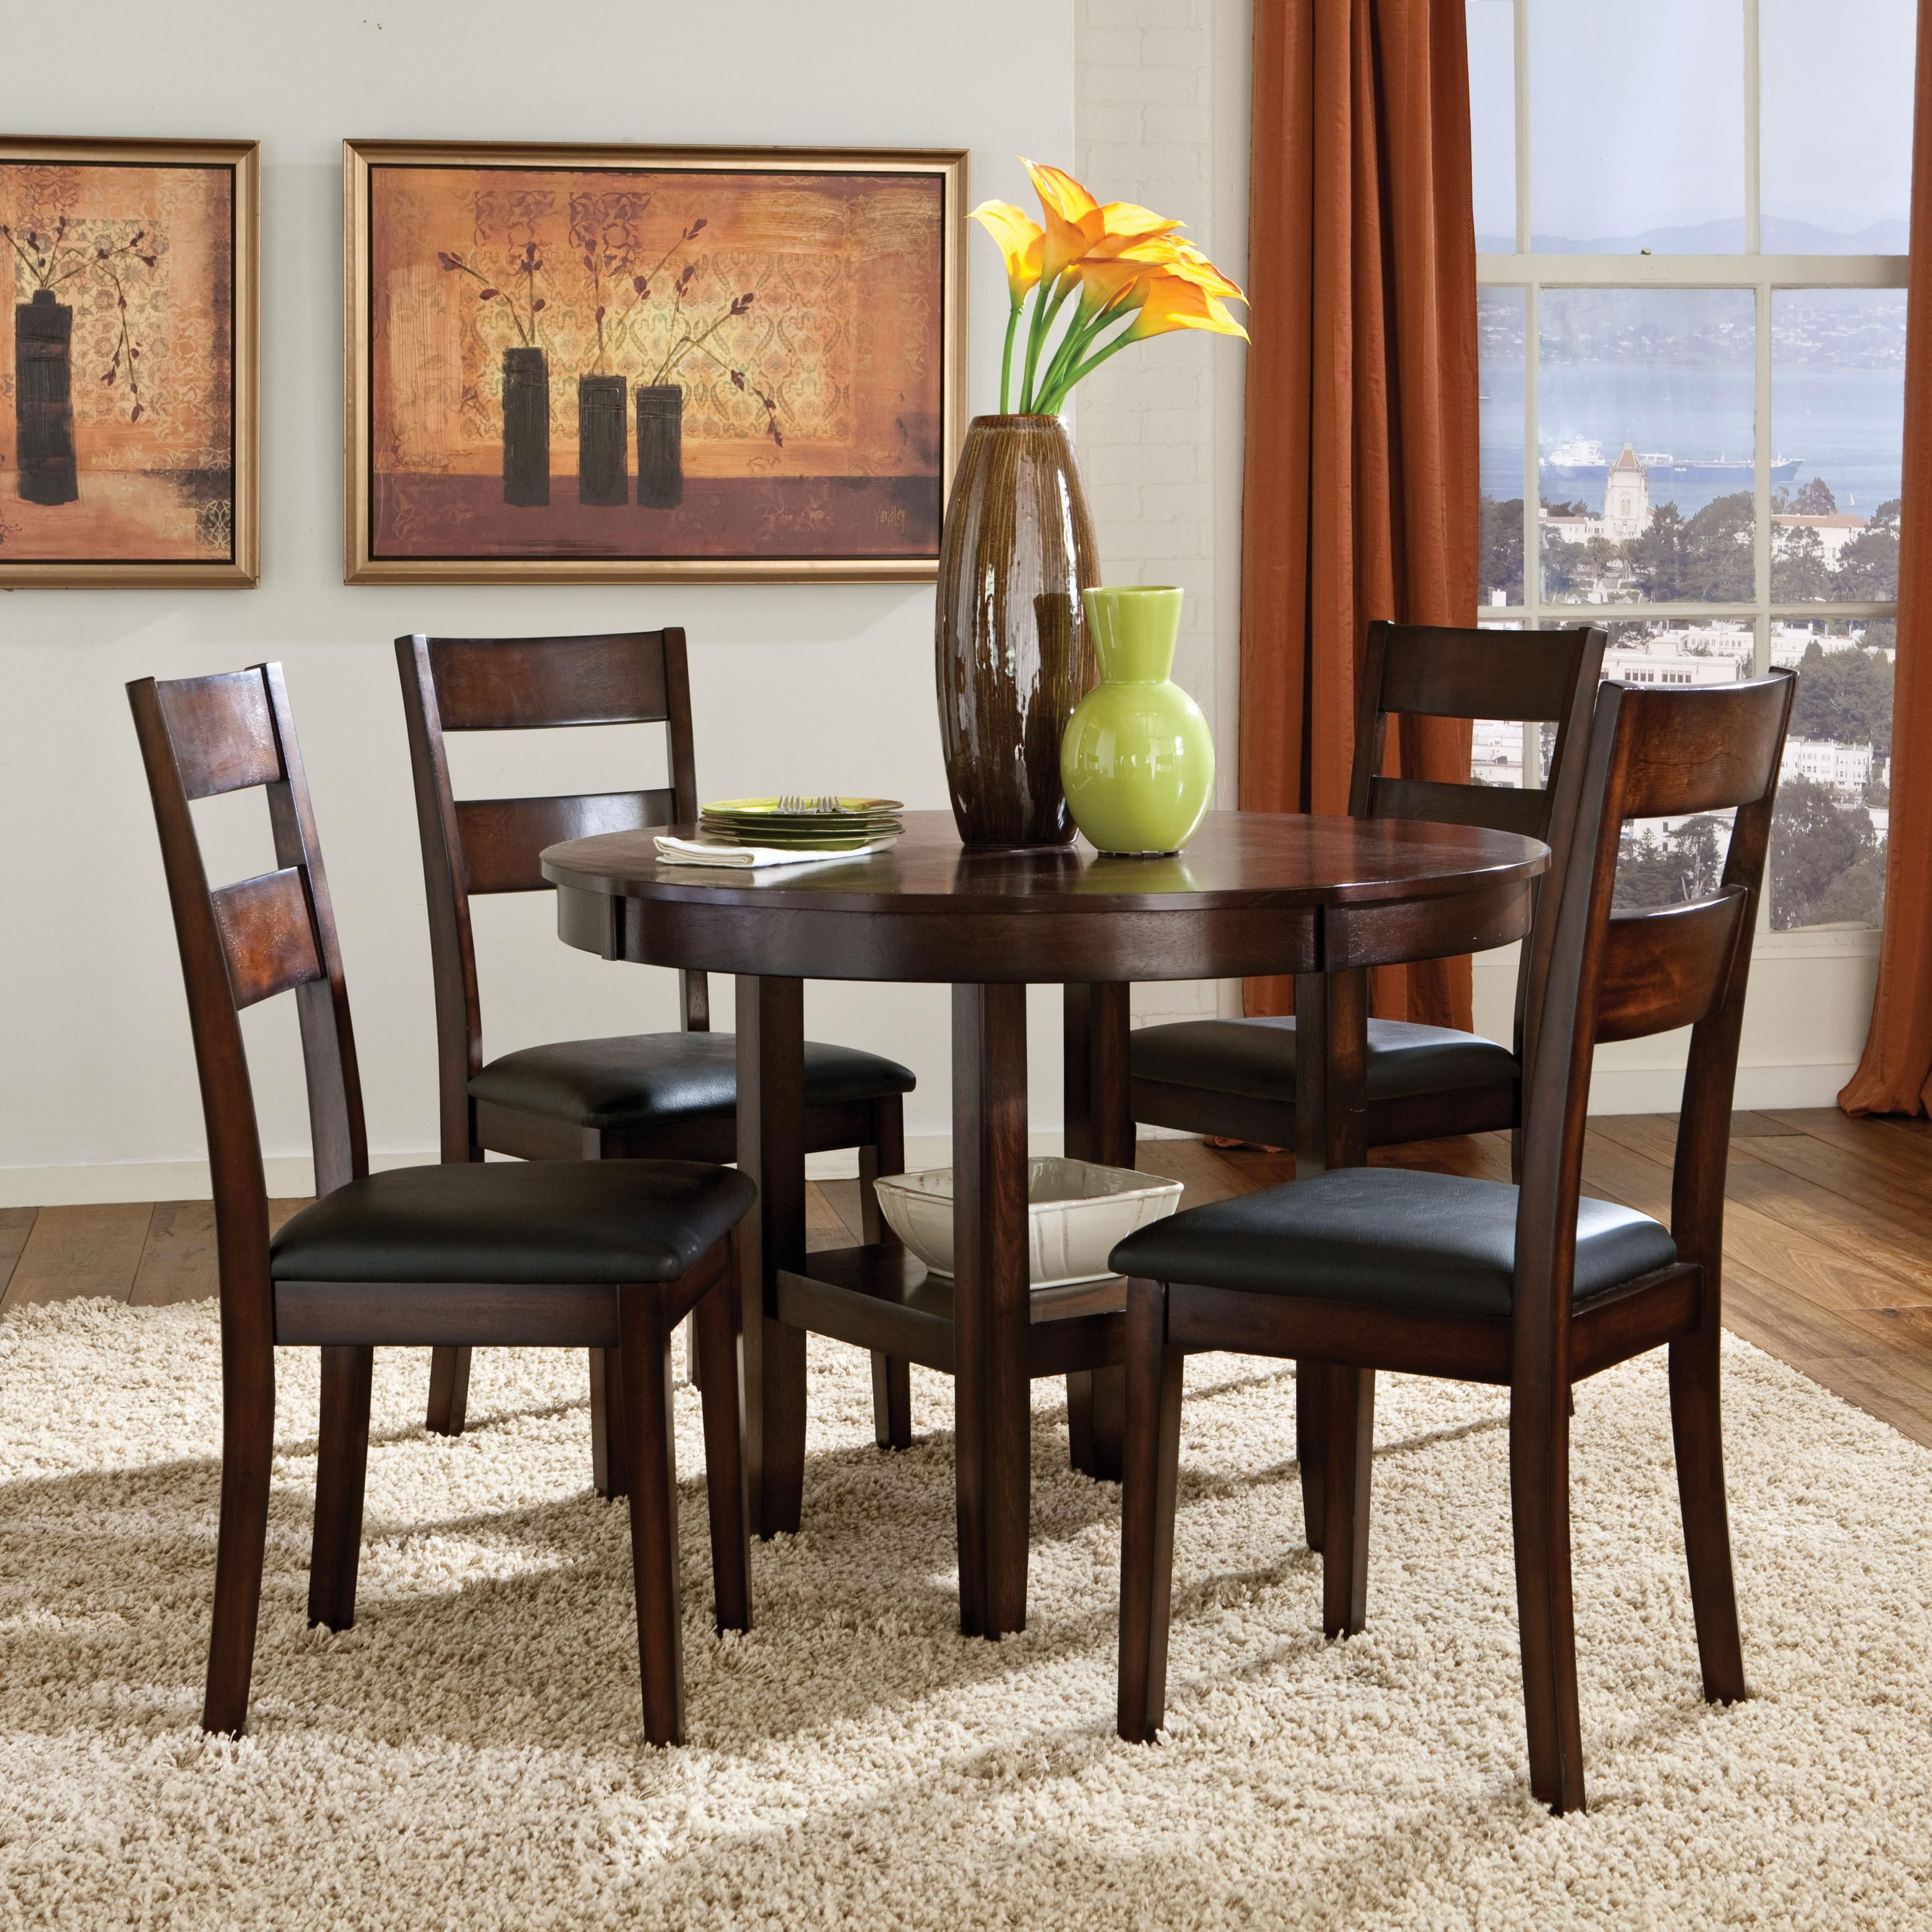 5 Piece Round Table & Dining Side Chairs Set Wolf Furniture